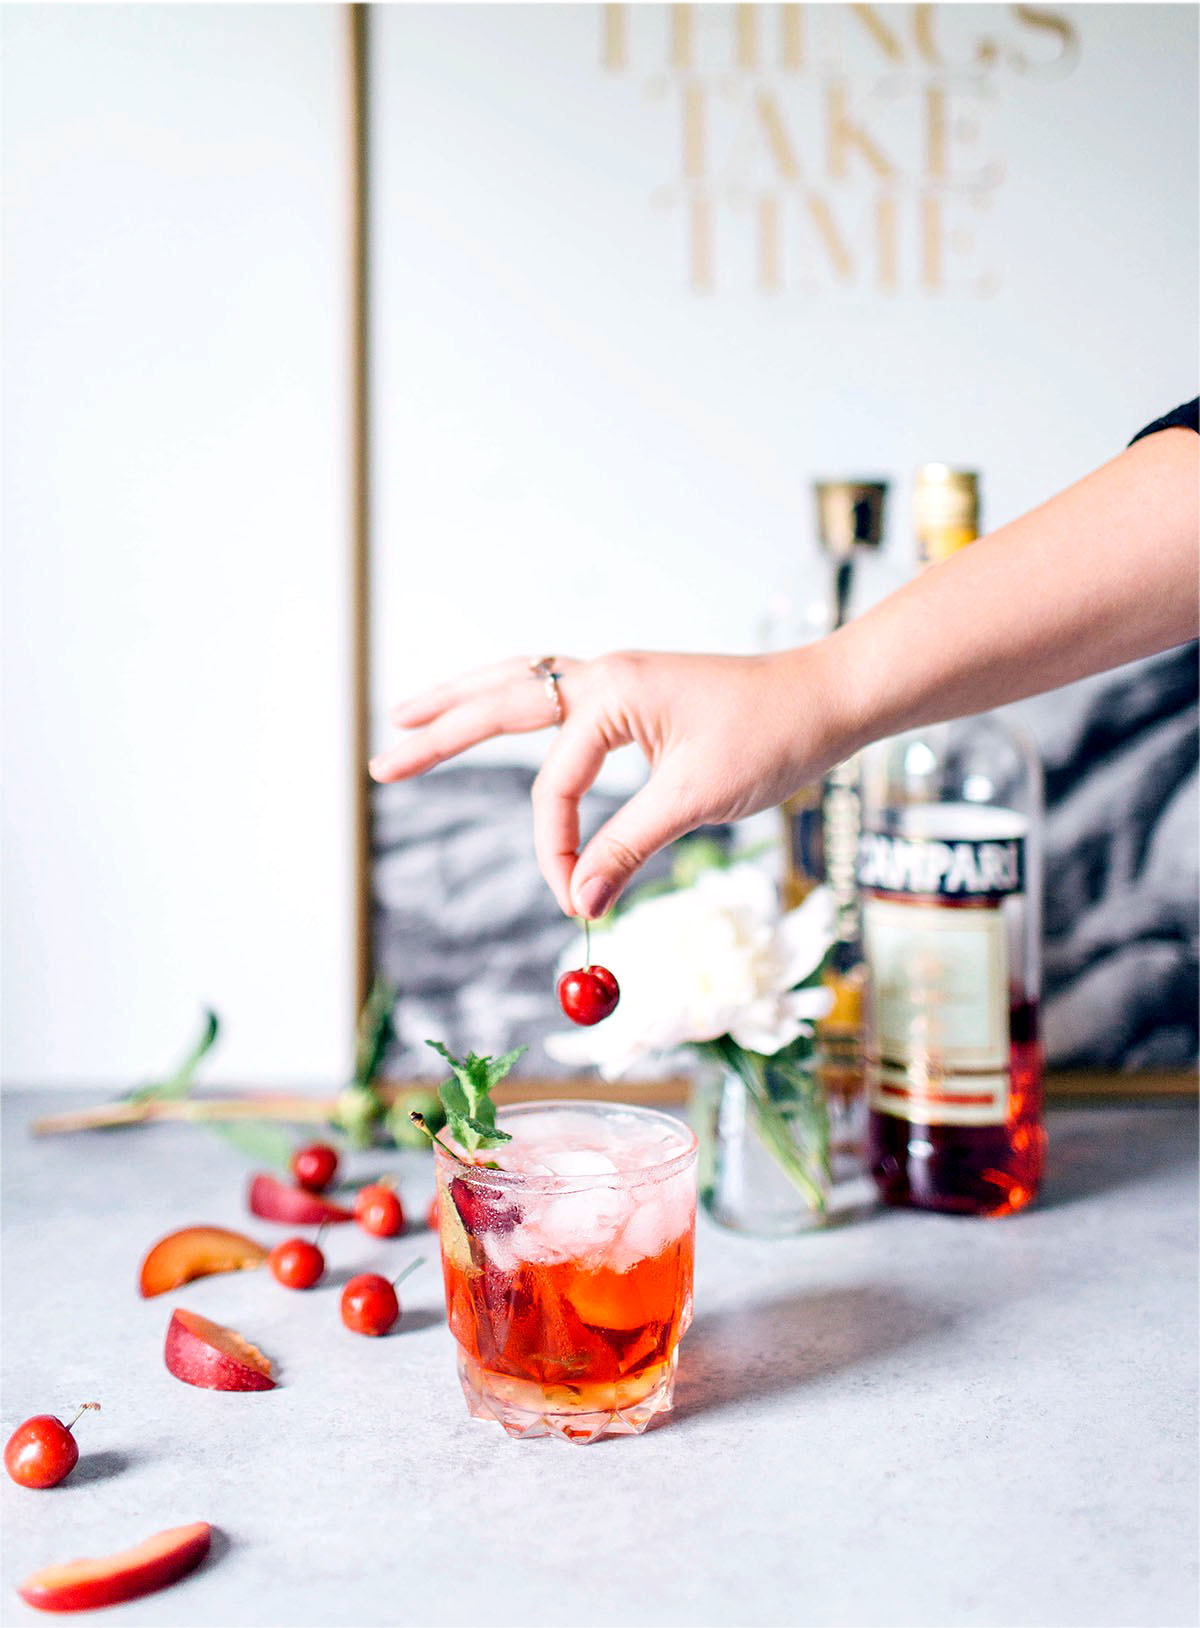 placing a cherry stop a st. germain spritz cocktail